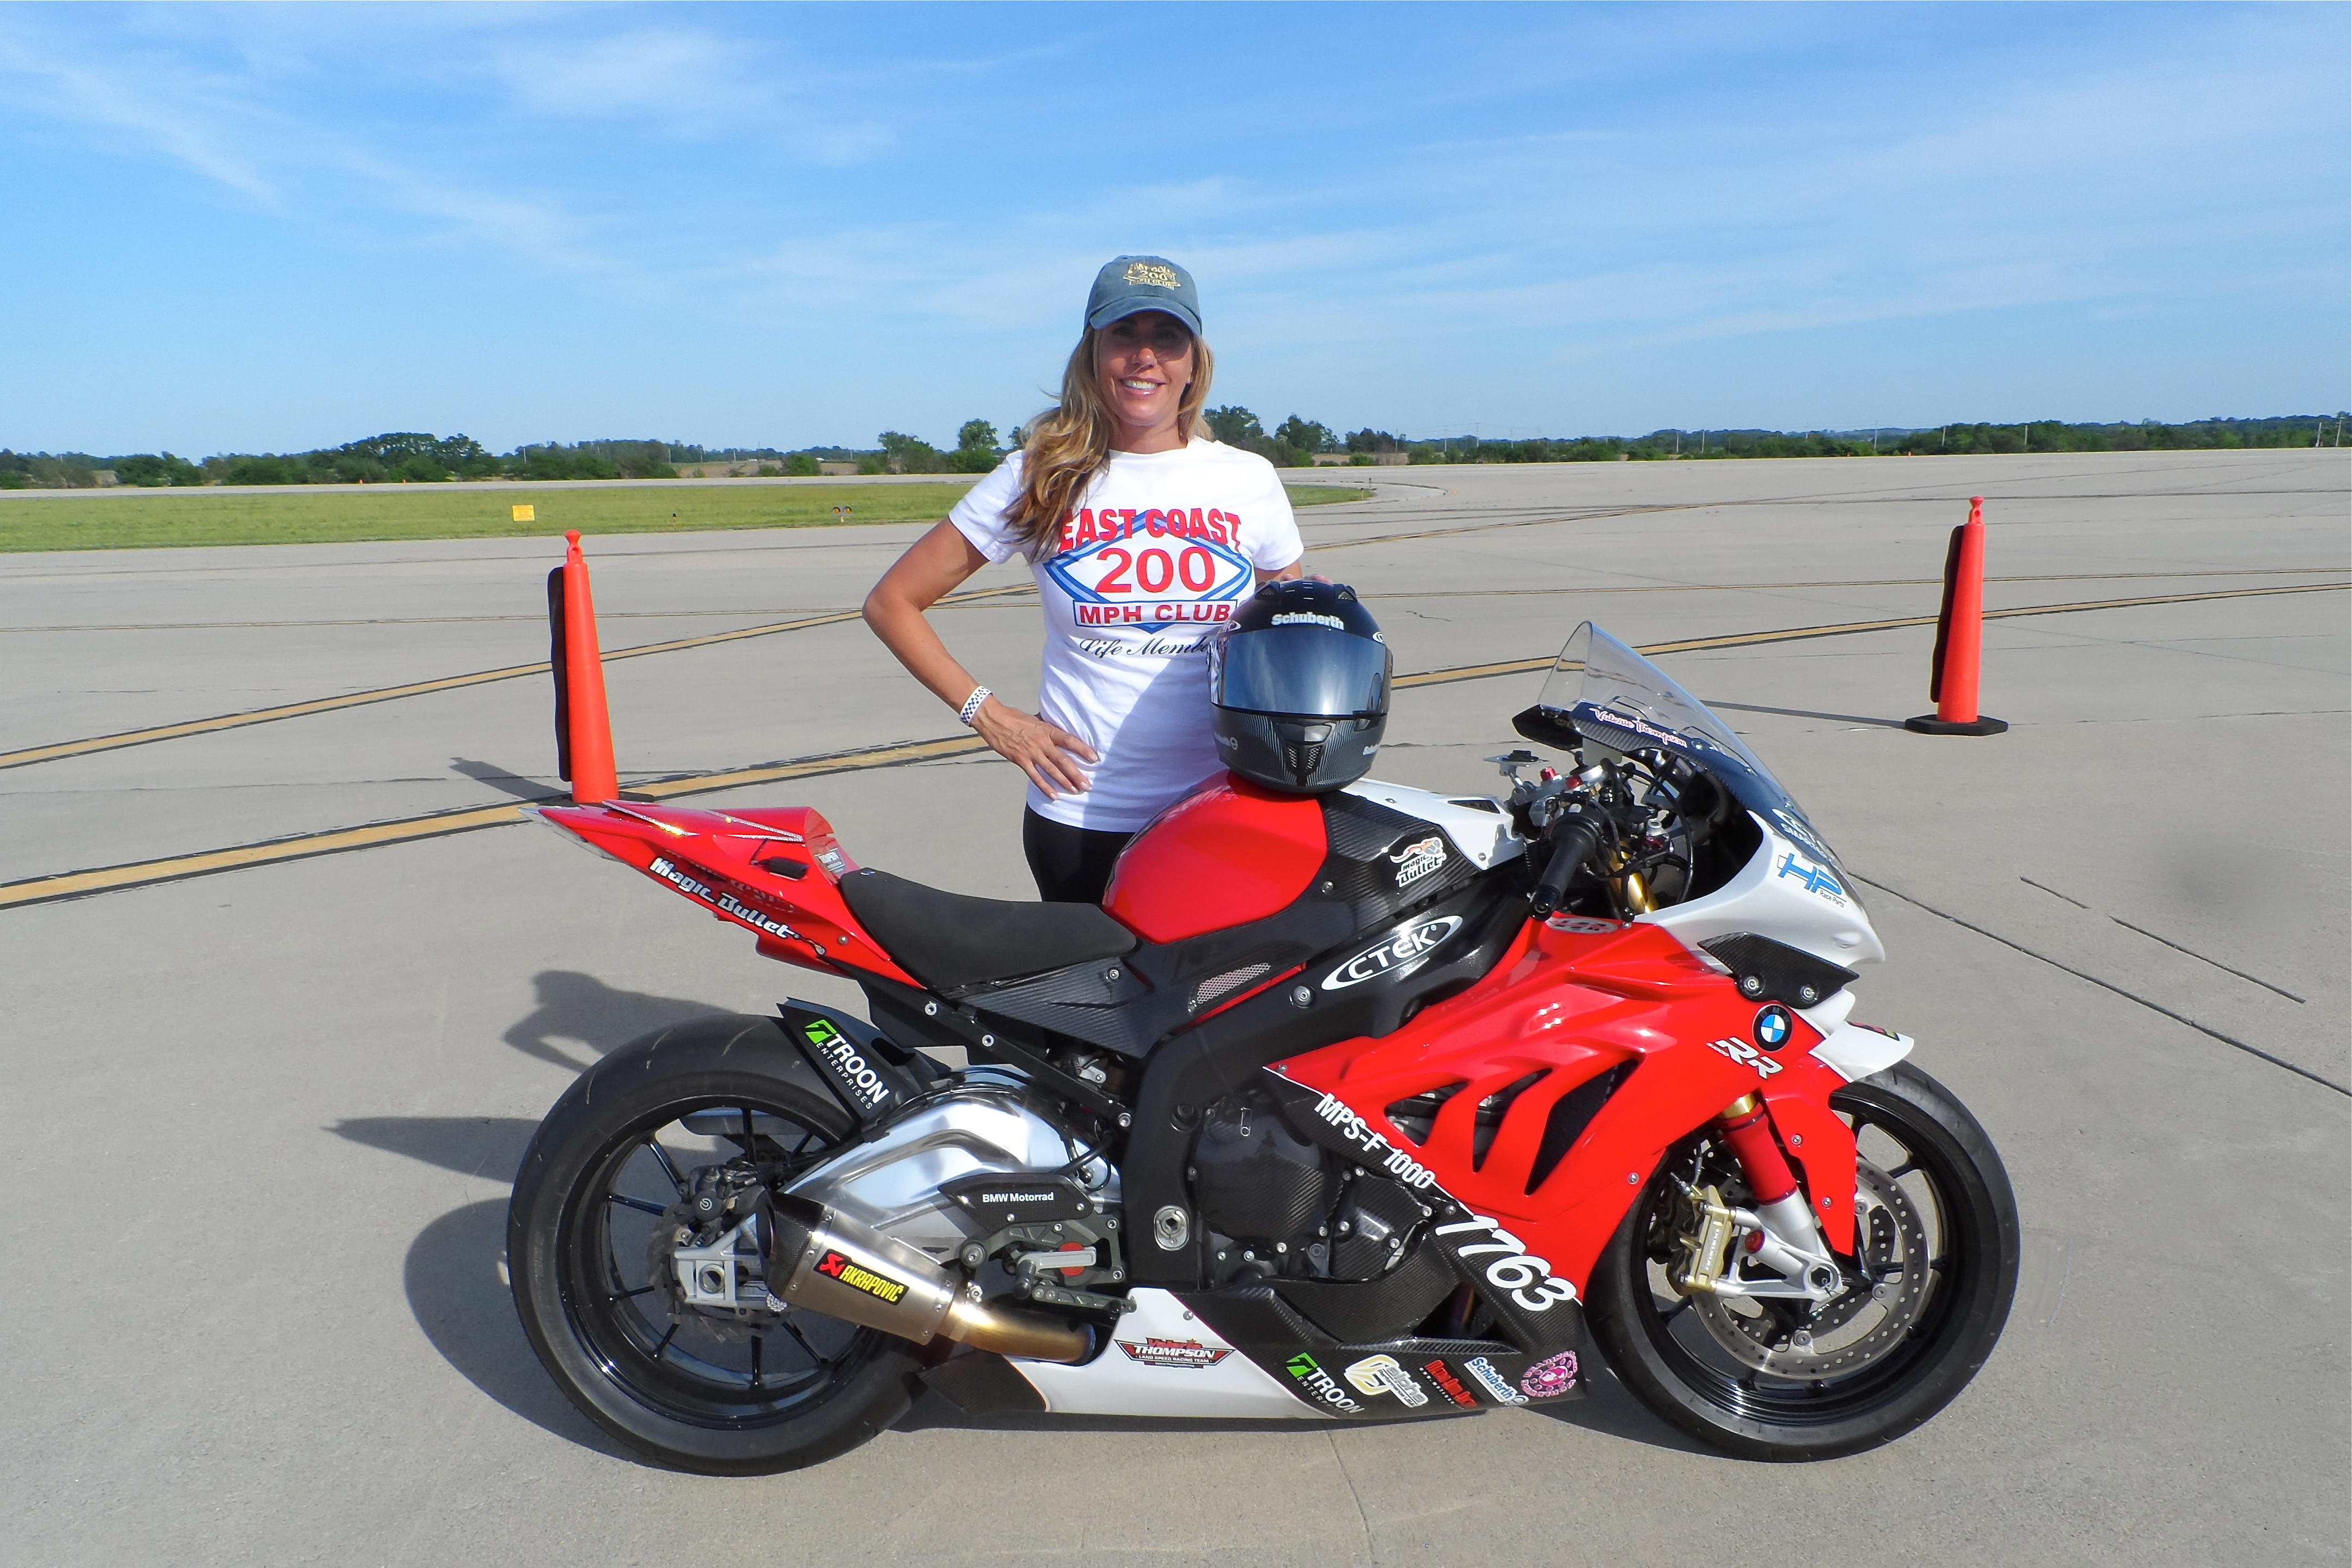 Valerie Thompson Bmw Racing Legend Attends Motorrad Days In Germany